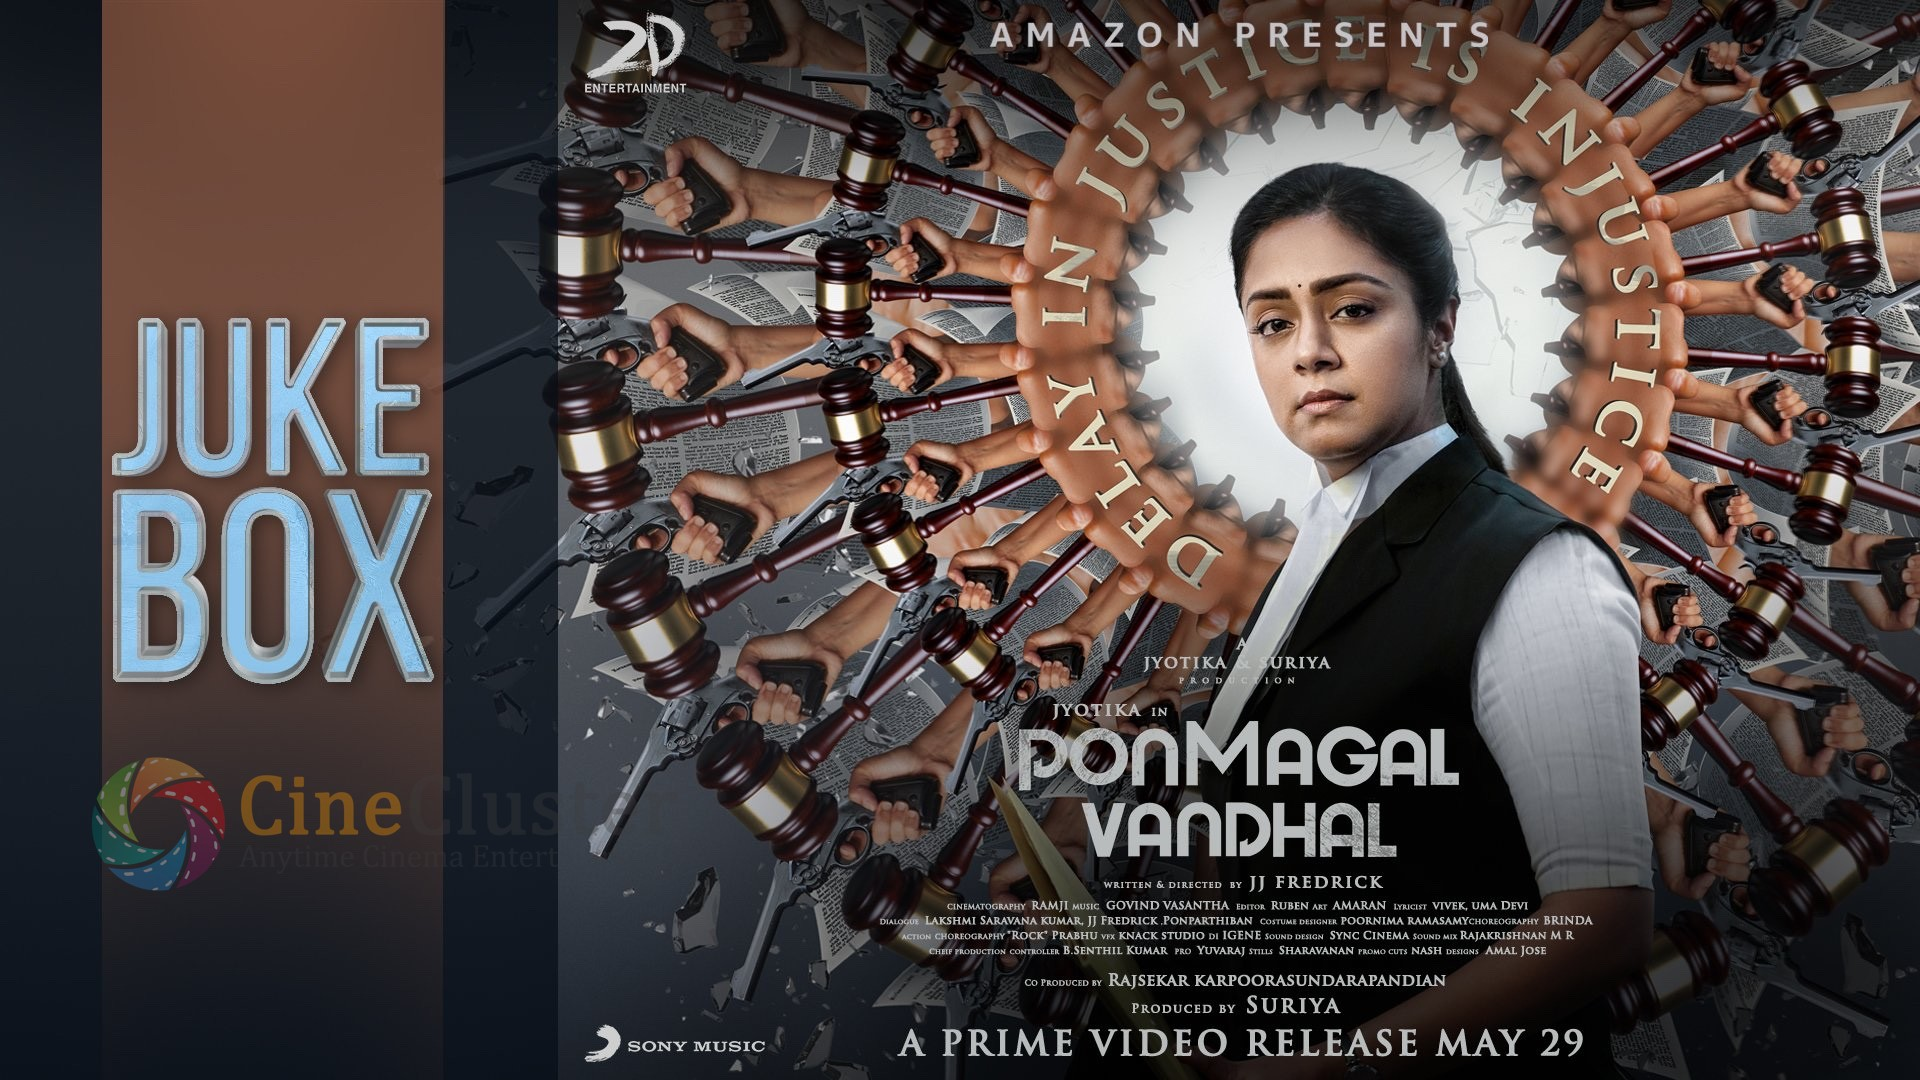 Ponmagal Vandhal Jukebox